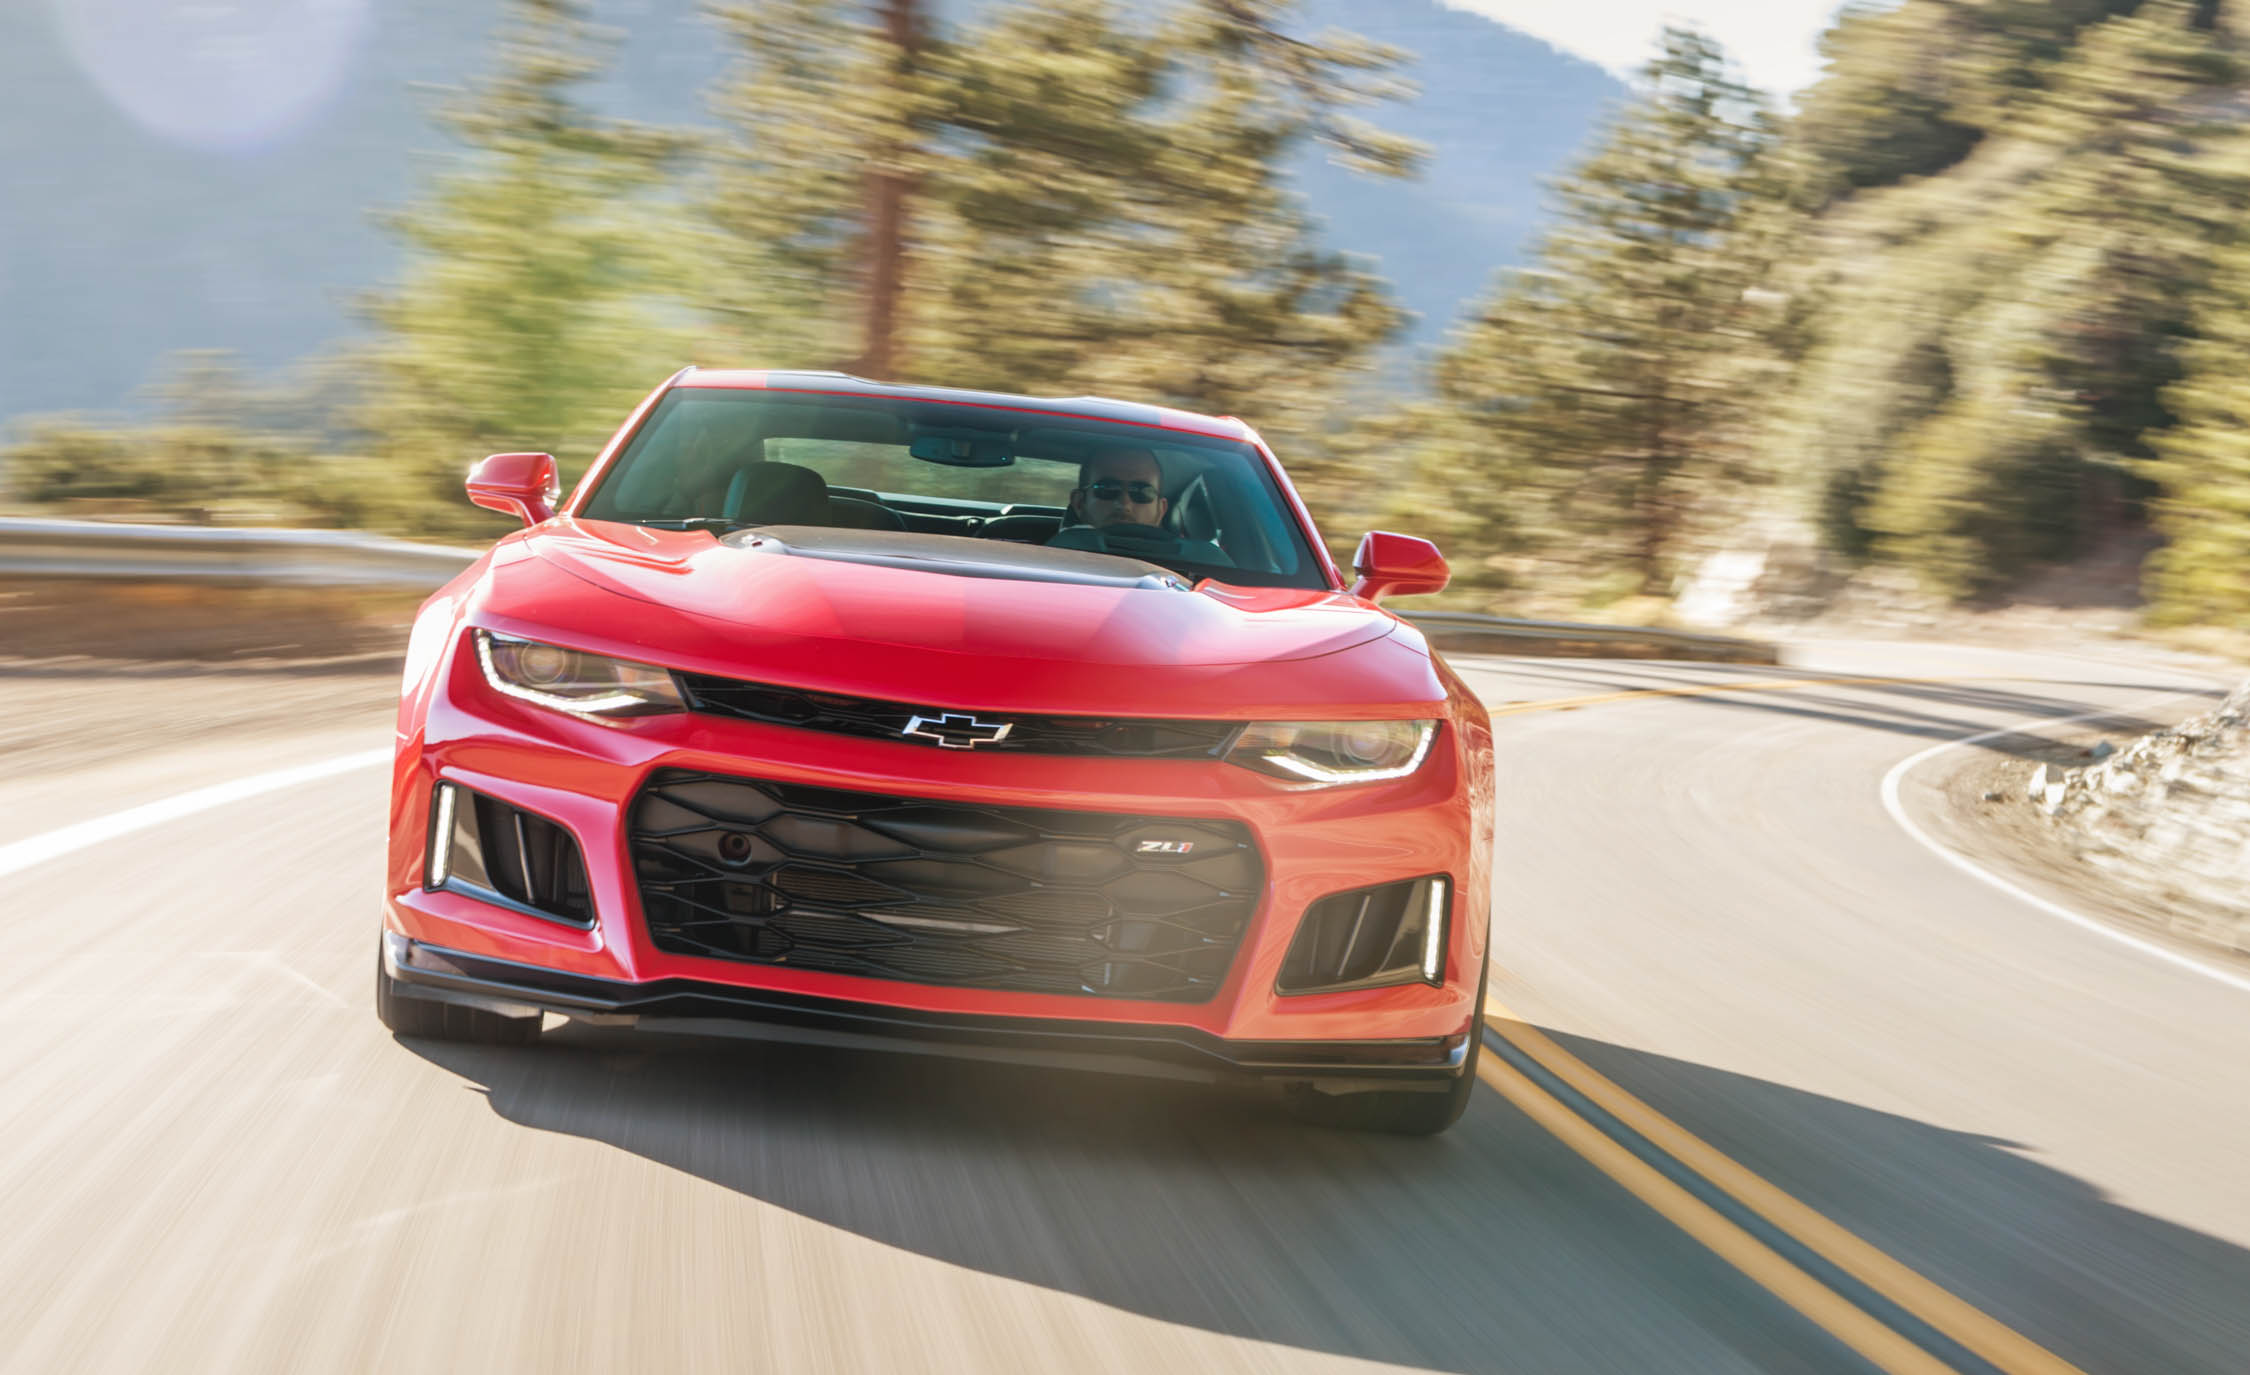 2017 Chevrolet Camaro ZL1 Red Test Drive Front DRL On (Photo 36 of 62)